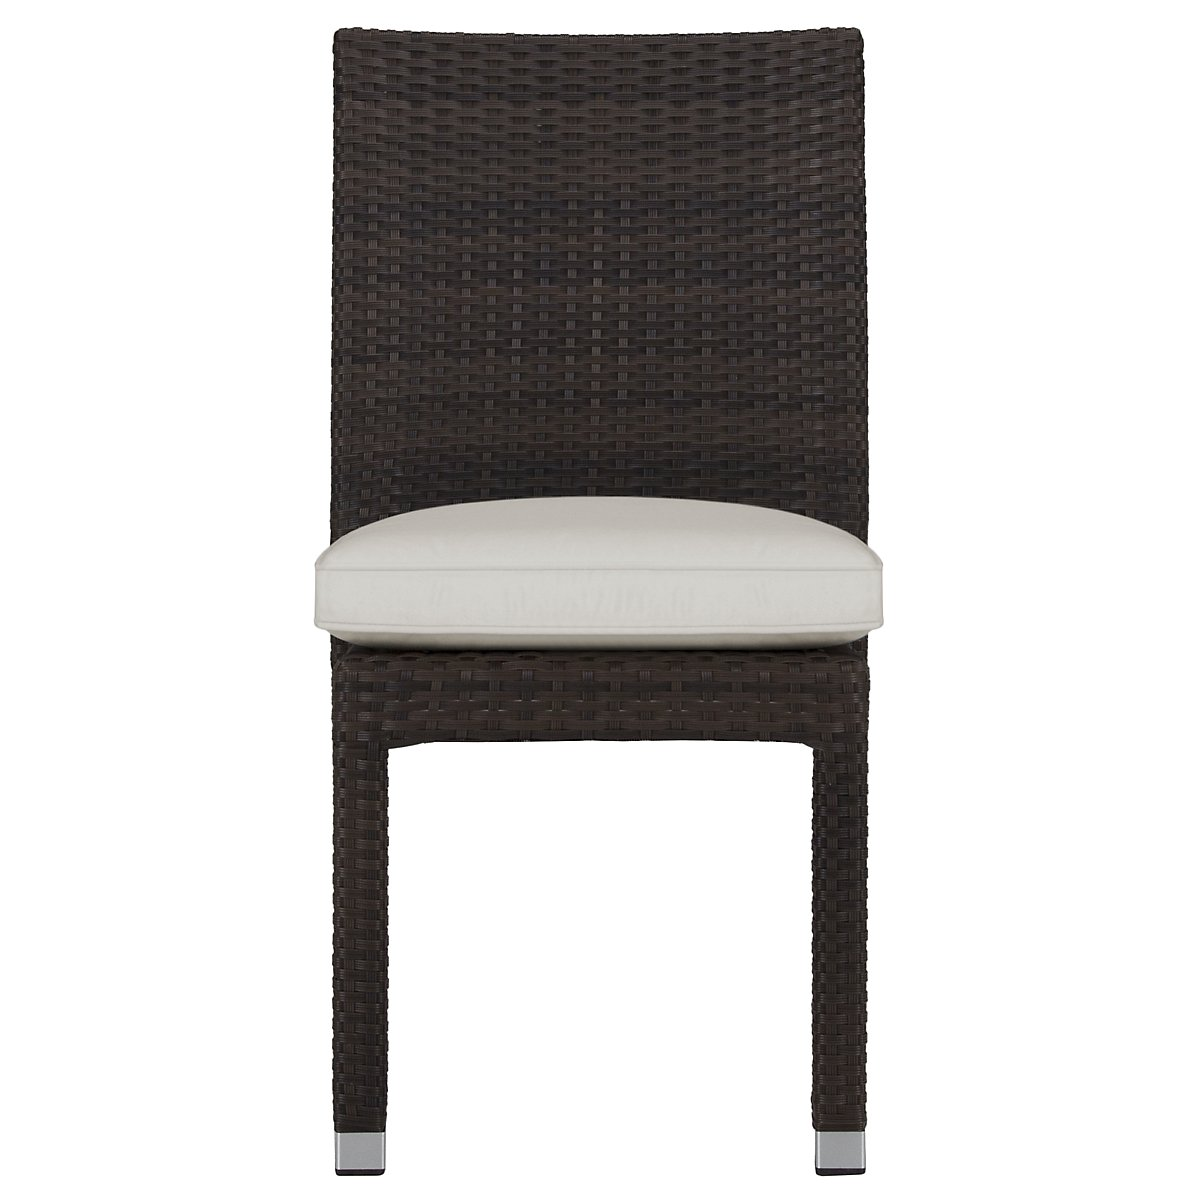 City furniture zen white 40 square table 4 chairs zen white 40 square table 4 chairs watchthetrailerfo